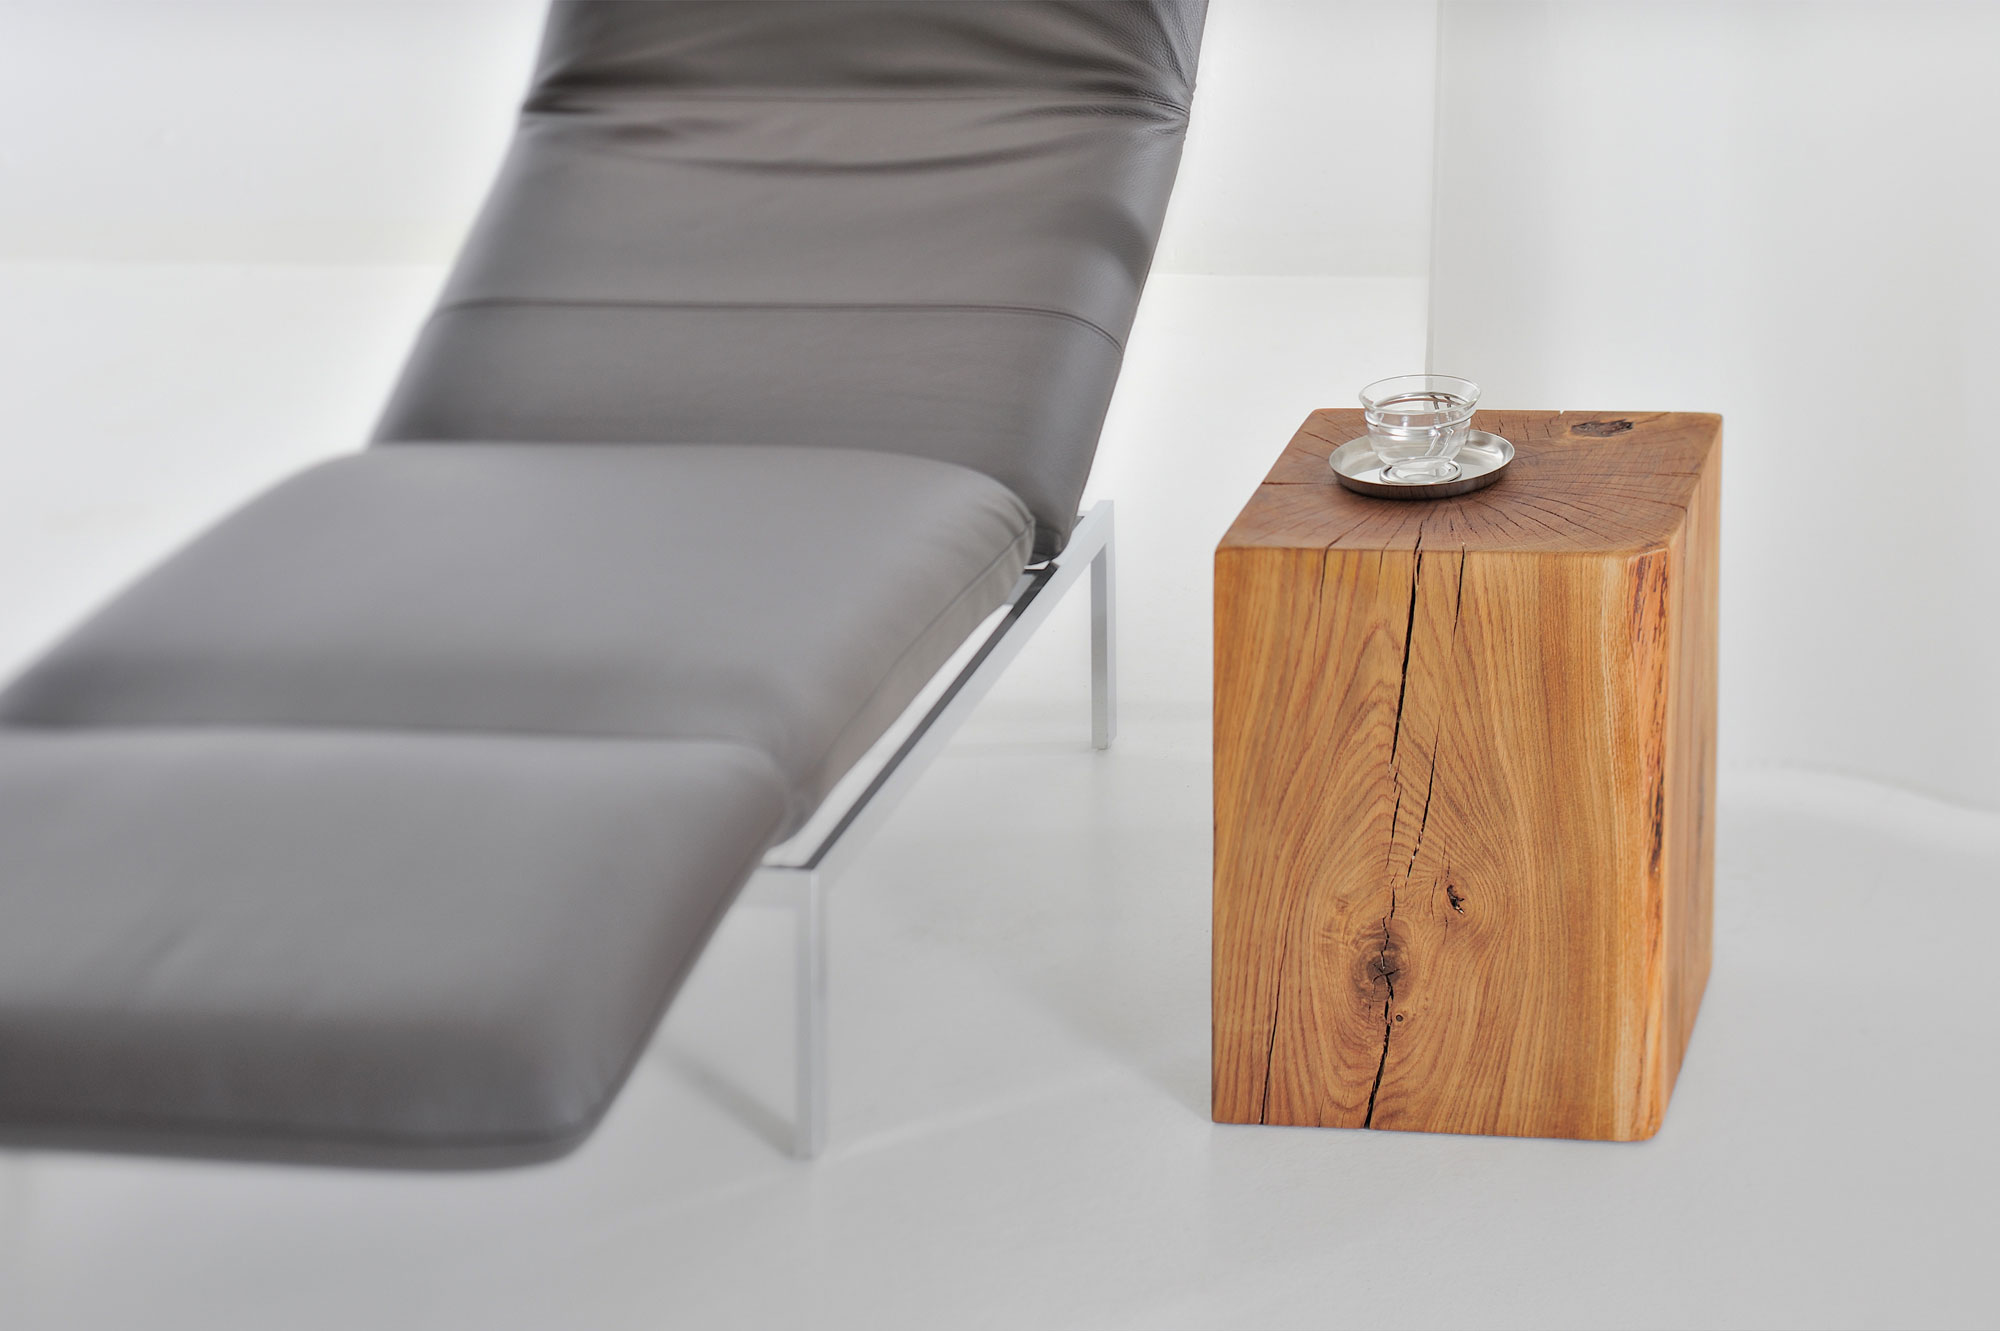 Tree Trunk Stool KLOTZ 3694 custom made in solid wood by vitamin design